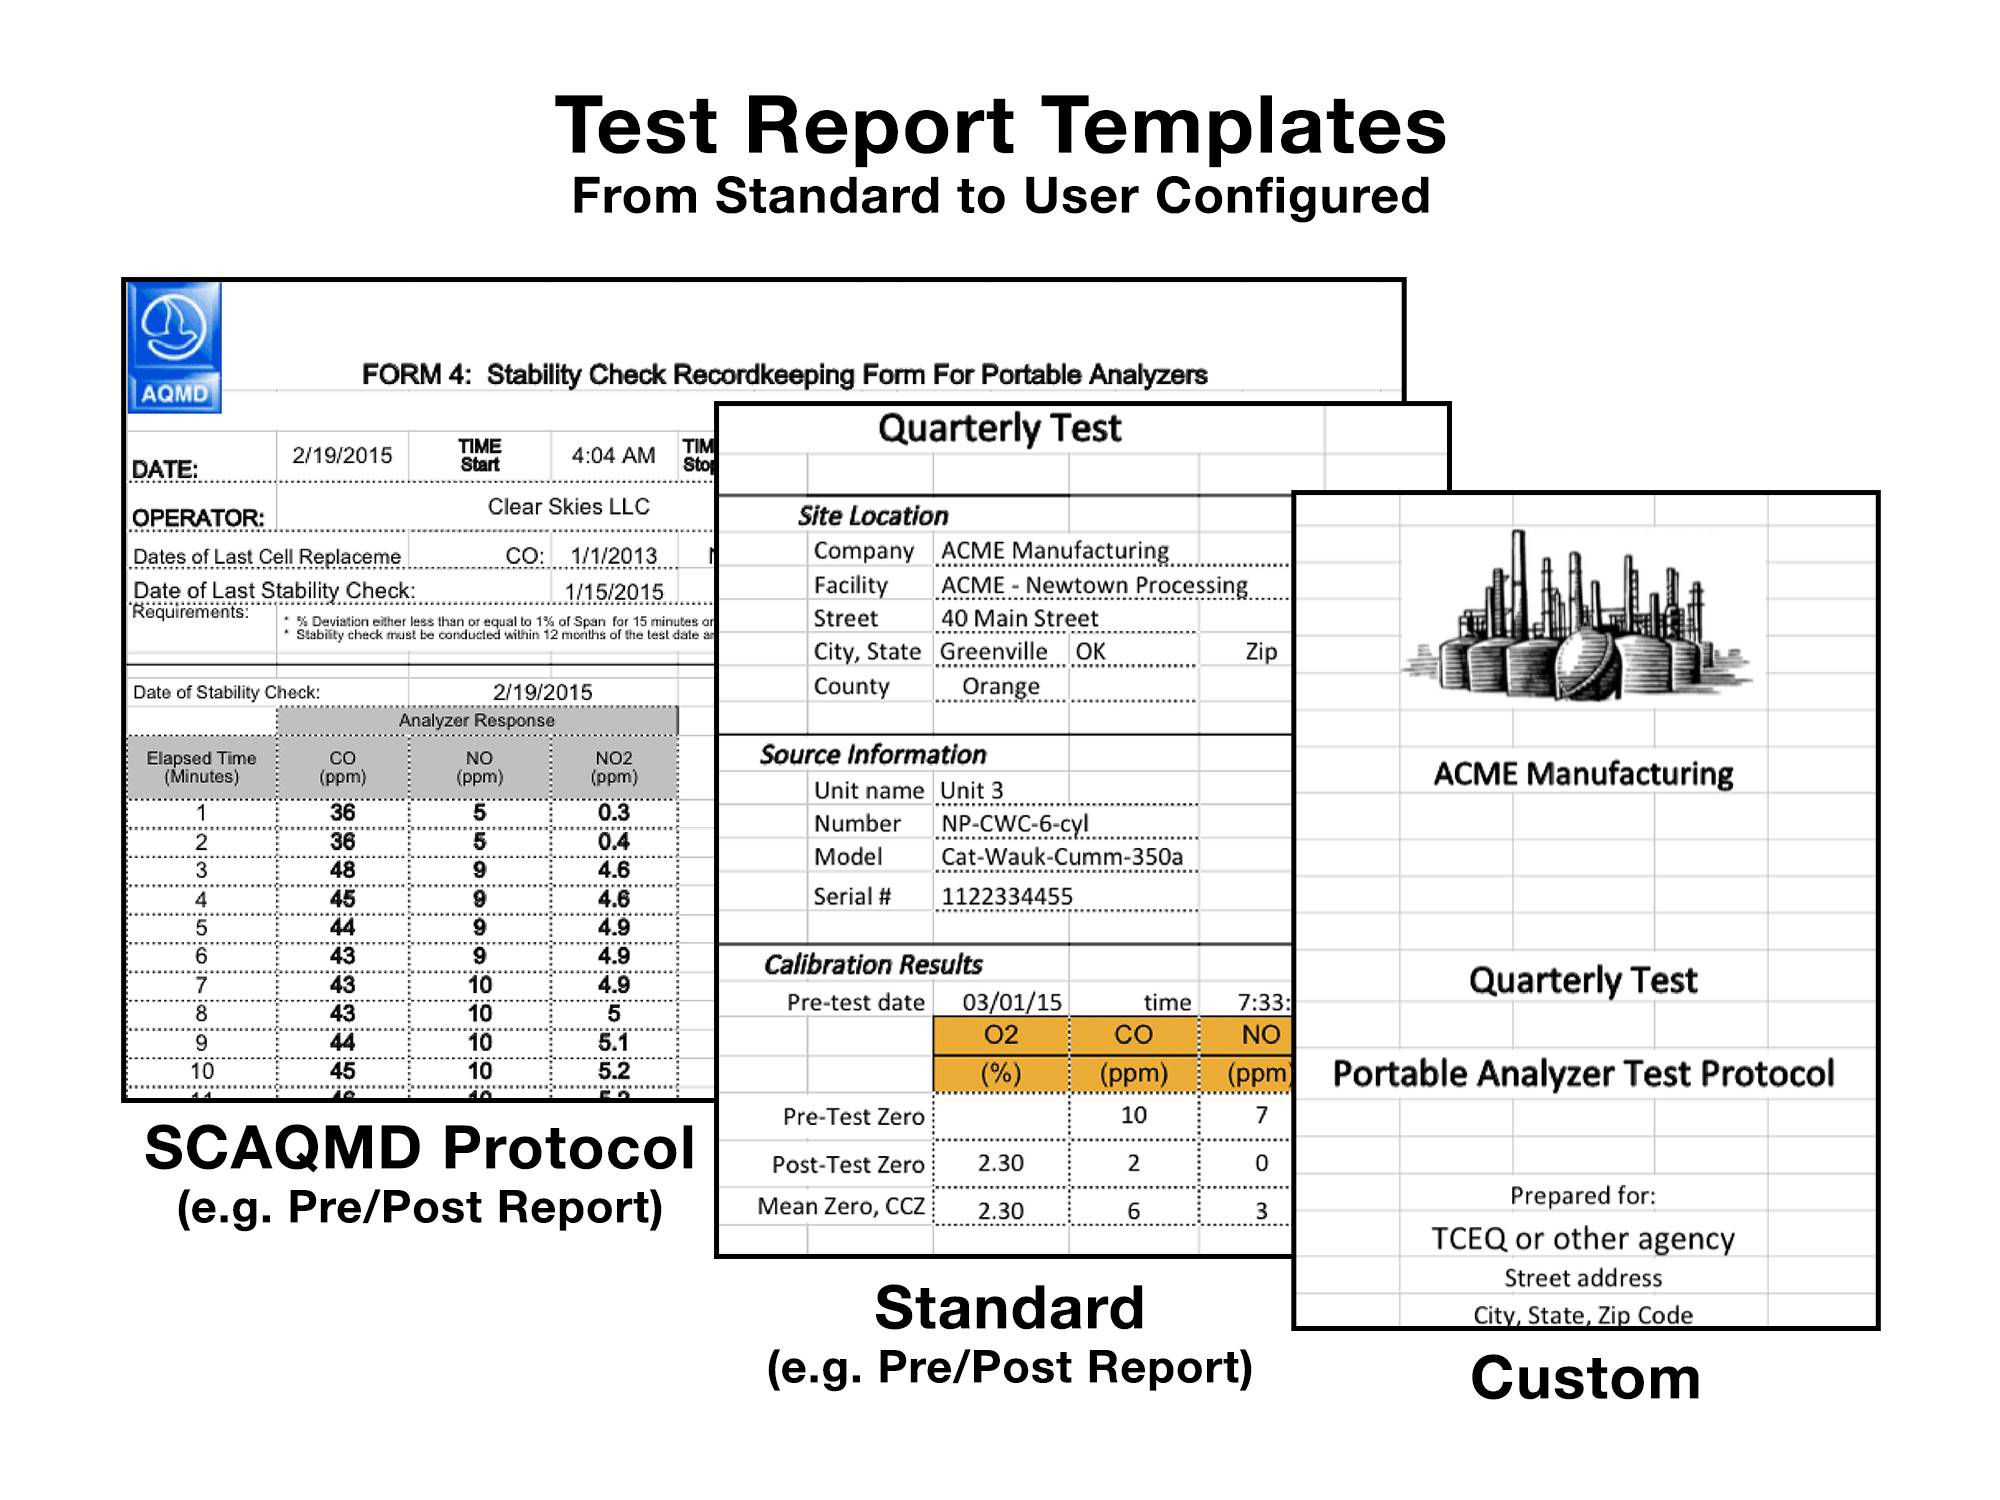 Test Report Templates - From Standard to User Configured